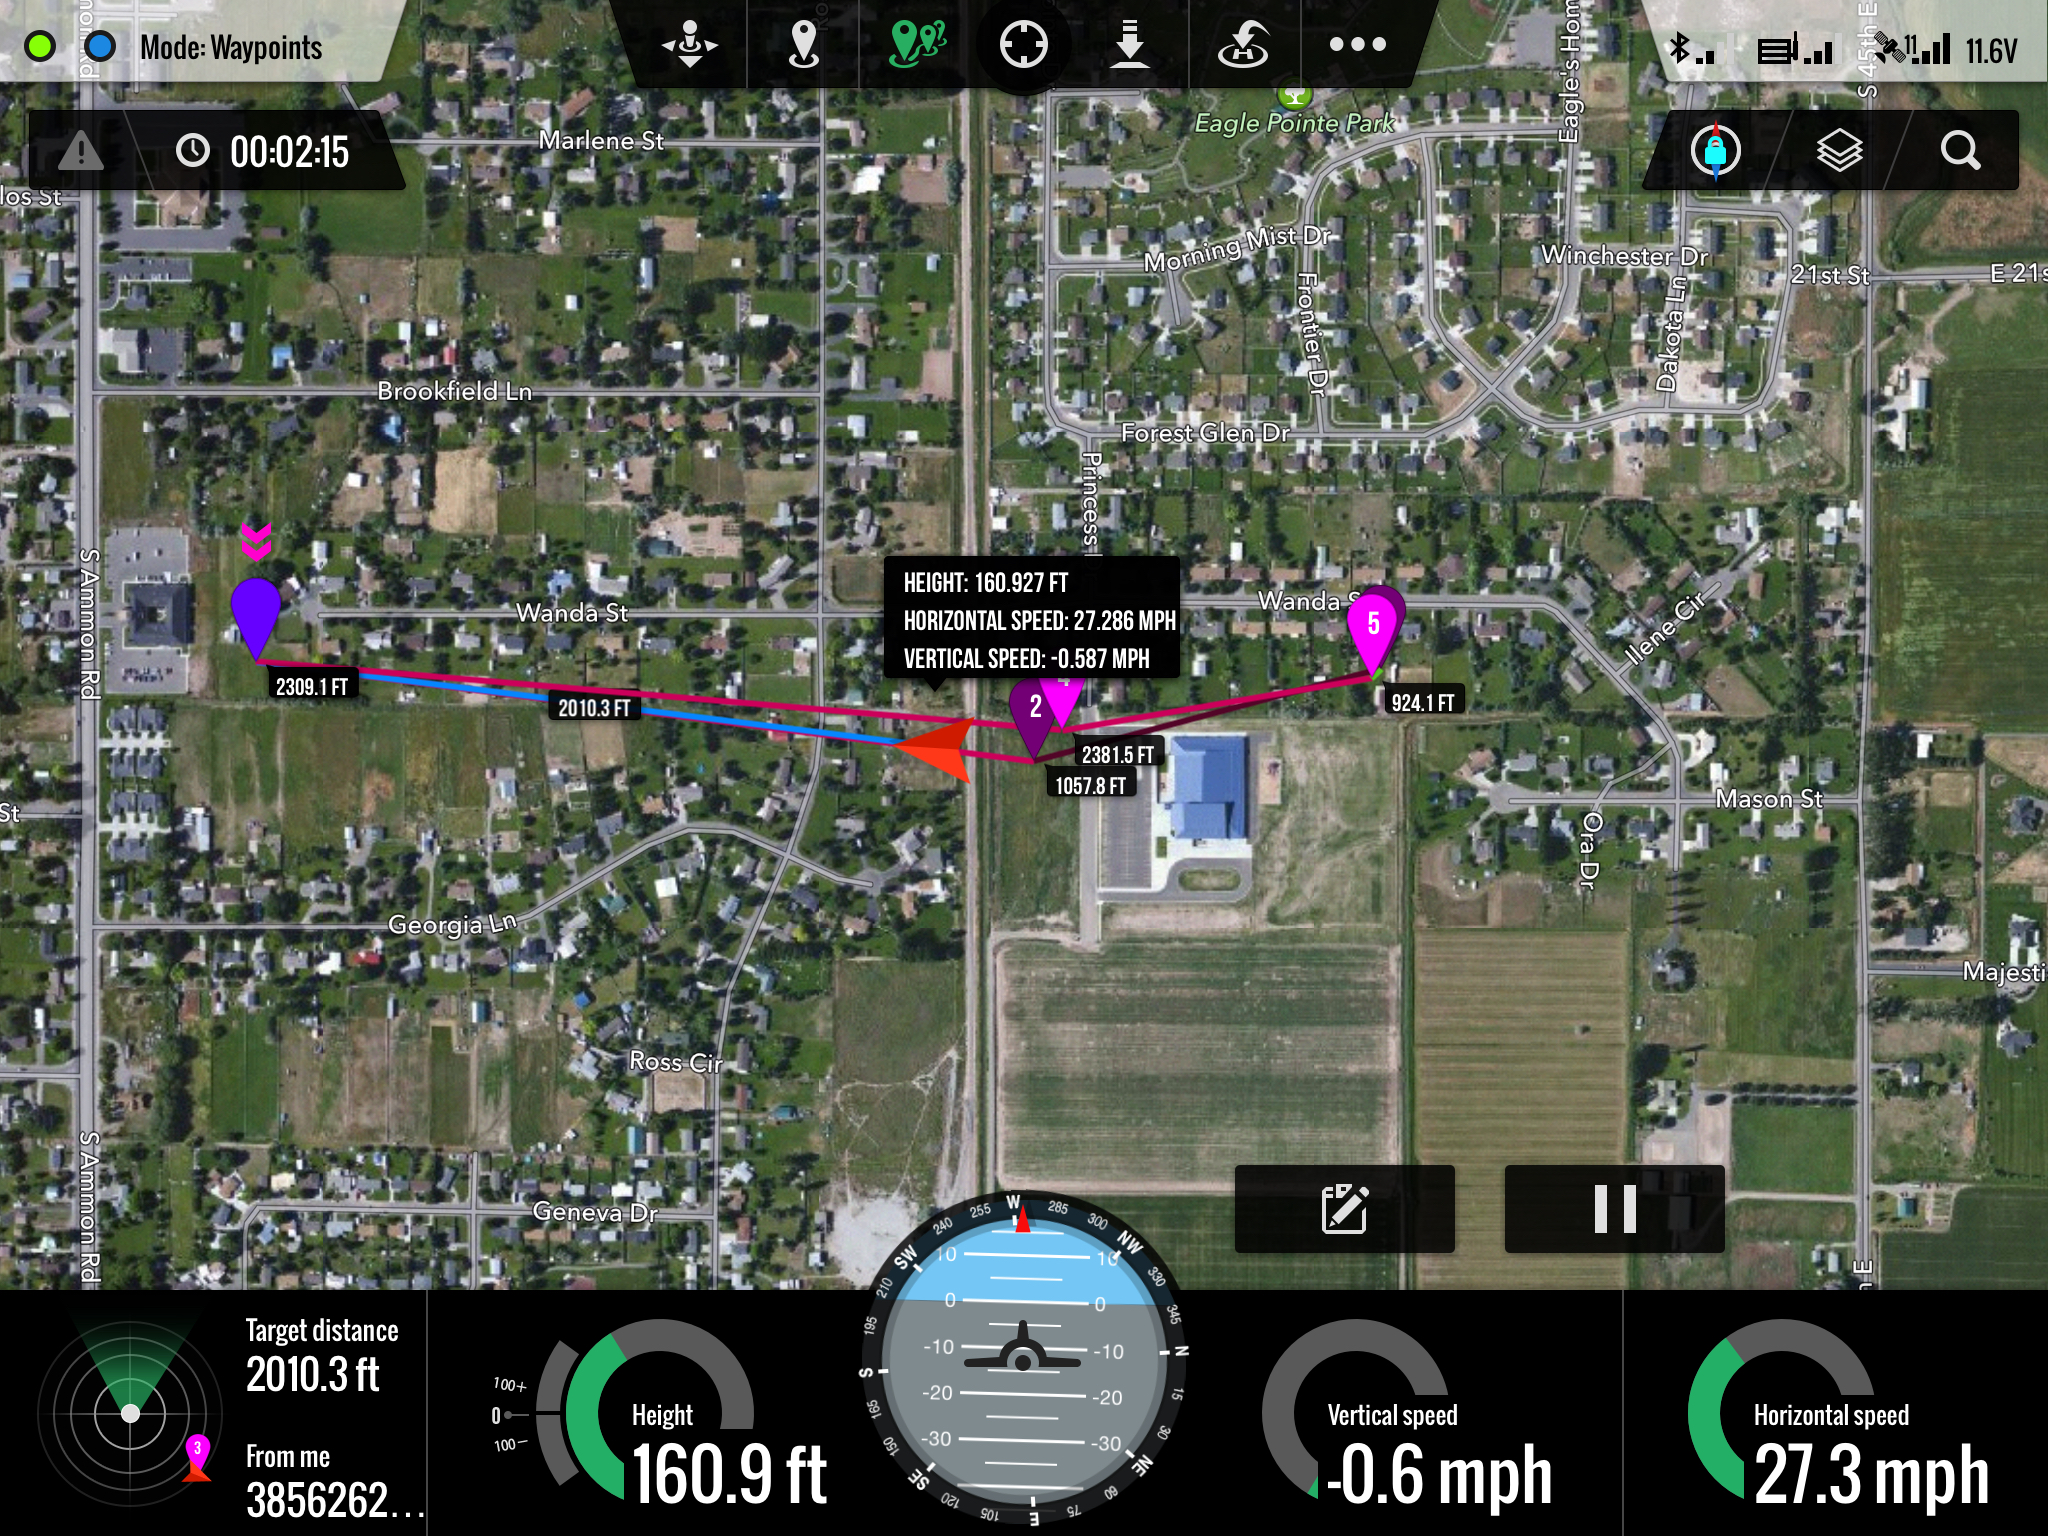 drone with gps with Review Dji Ground Station Ipad App on Review Dji Ground Station Ipad App further Terneuzen together with Getting There in addition Giant Dragon Temple At Wat S hran besides Garmin 230.